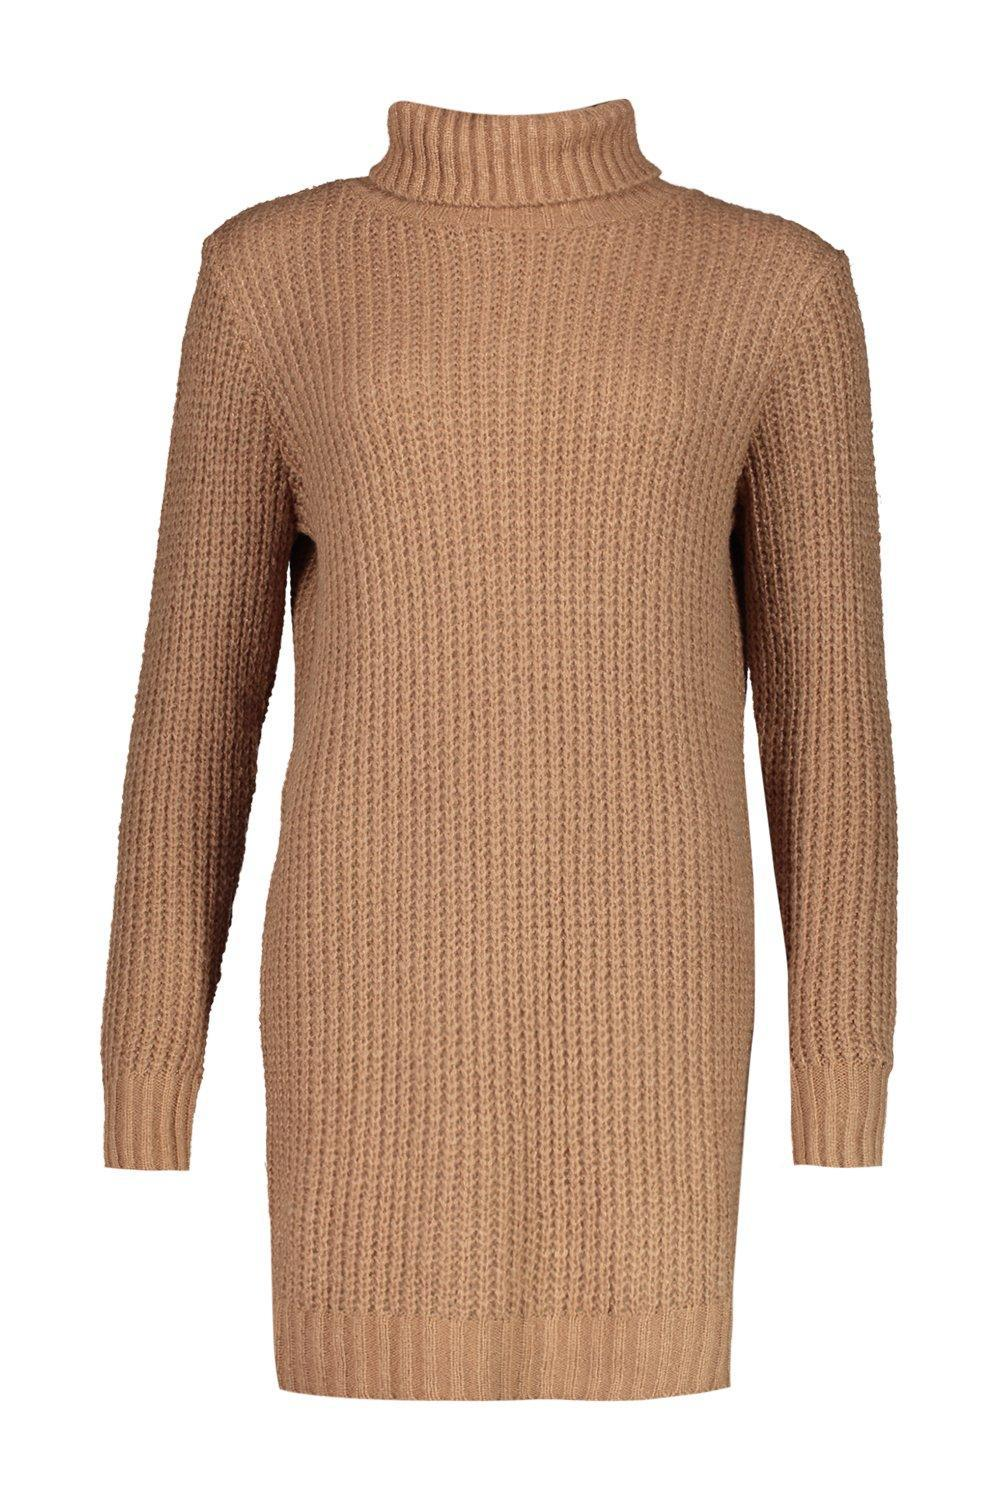 Boohoo - Brown Tall Soft Knit Roll Neck Sweater Dress - Lyst. View  fullscreen daf2555e1